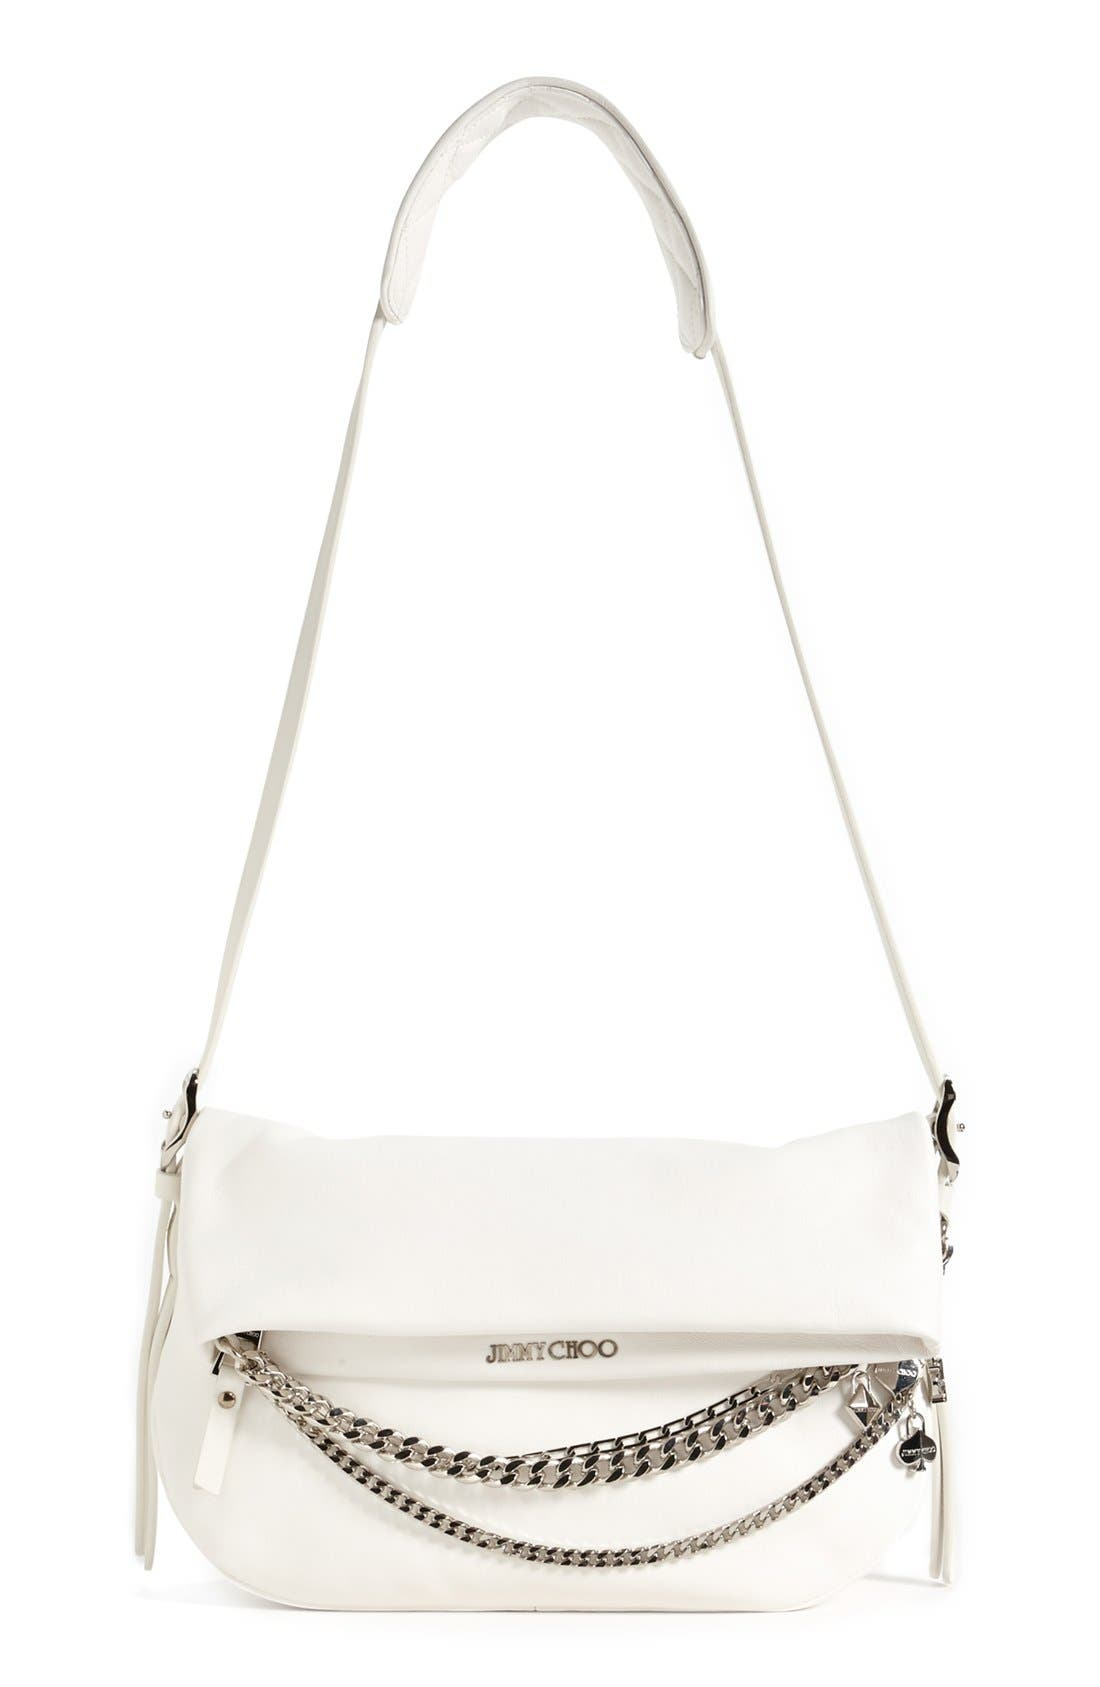 Main Image - Jimmy Choo 'Biker - Small' Leather Crossbody Bag